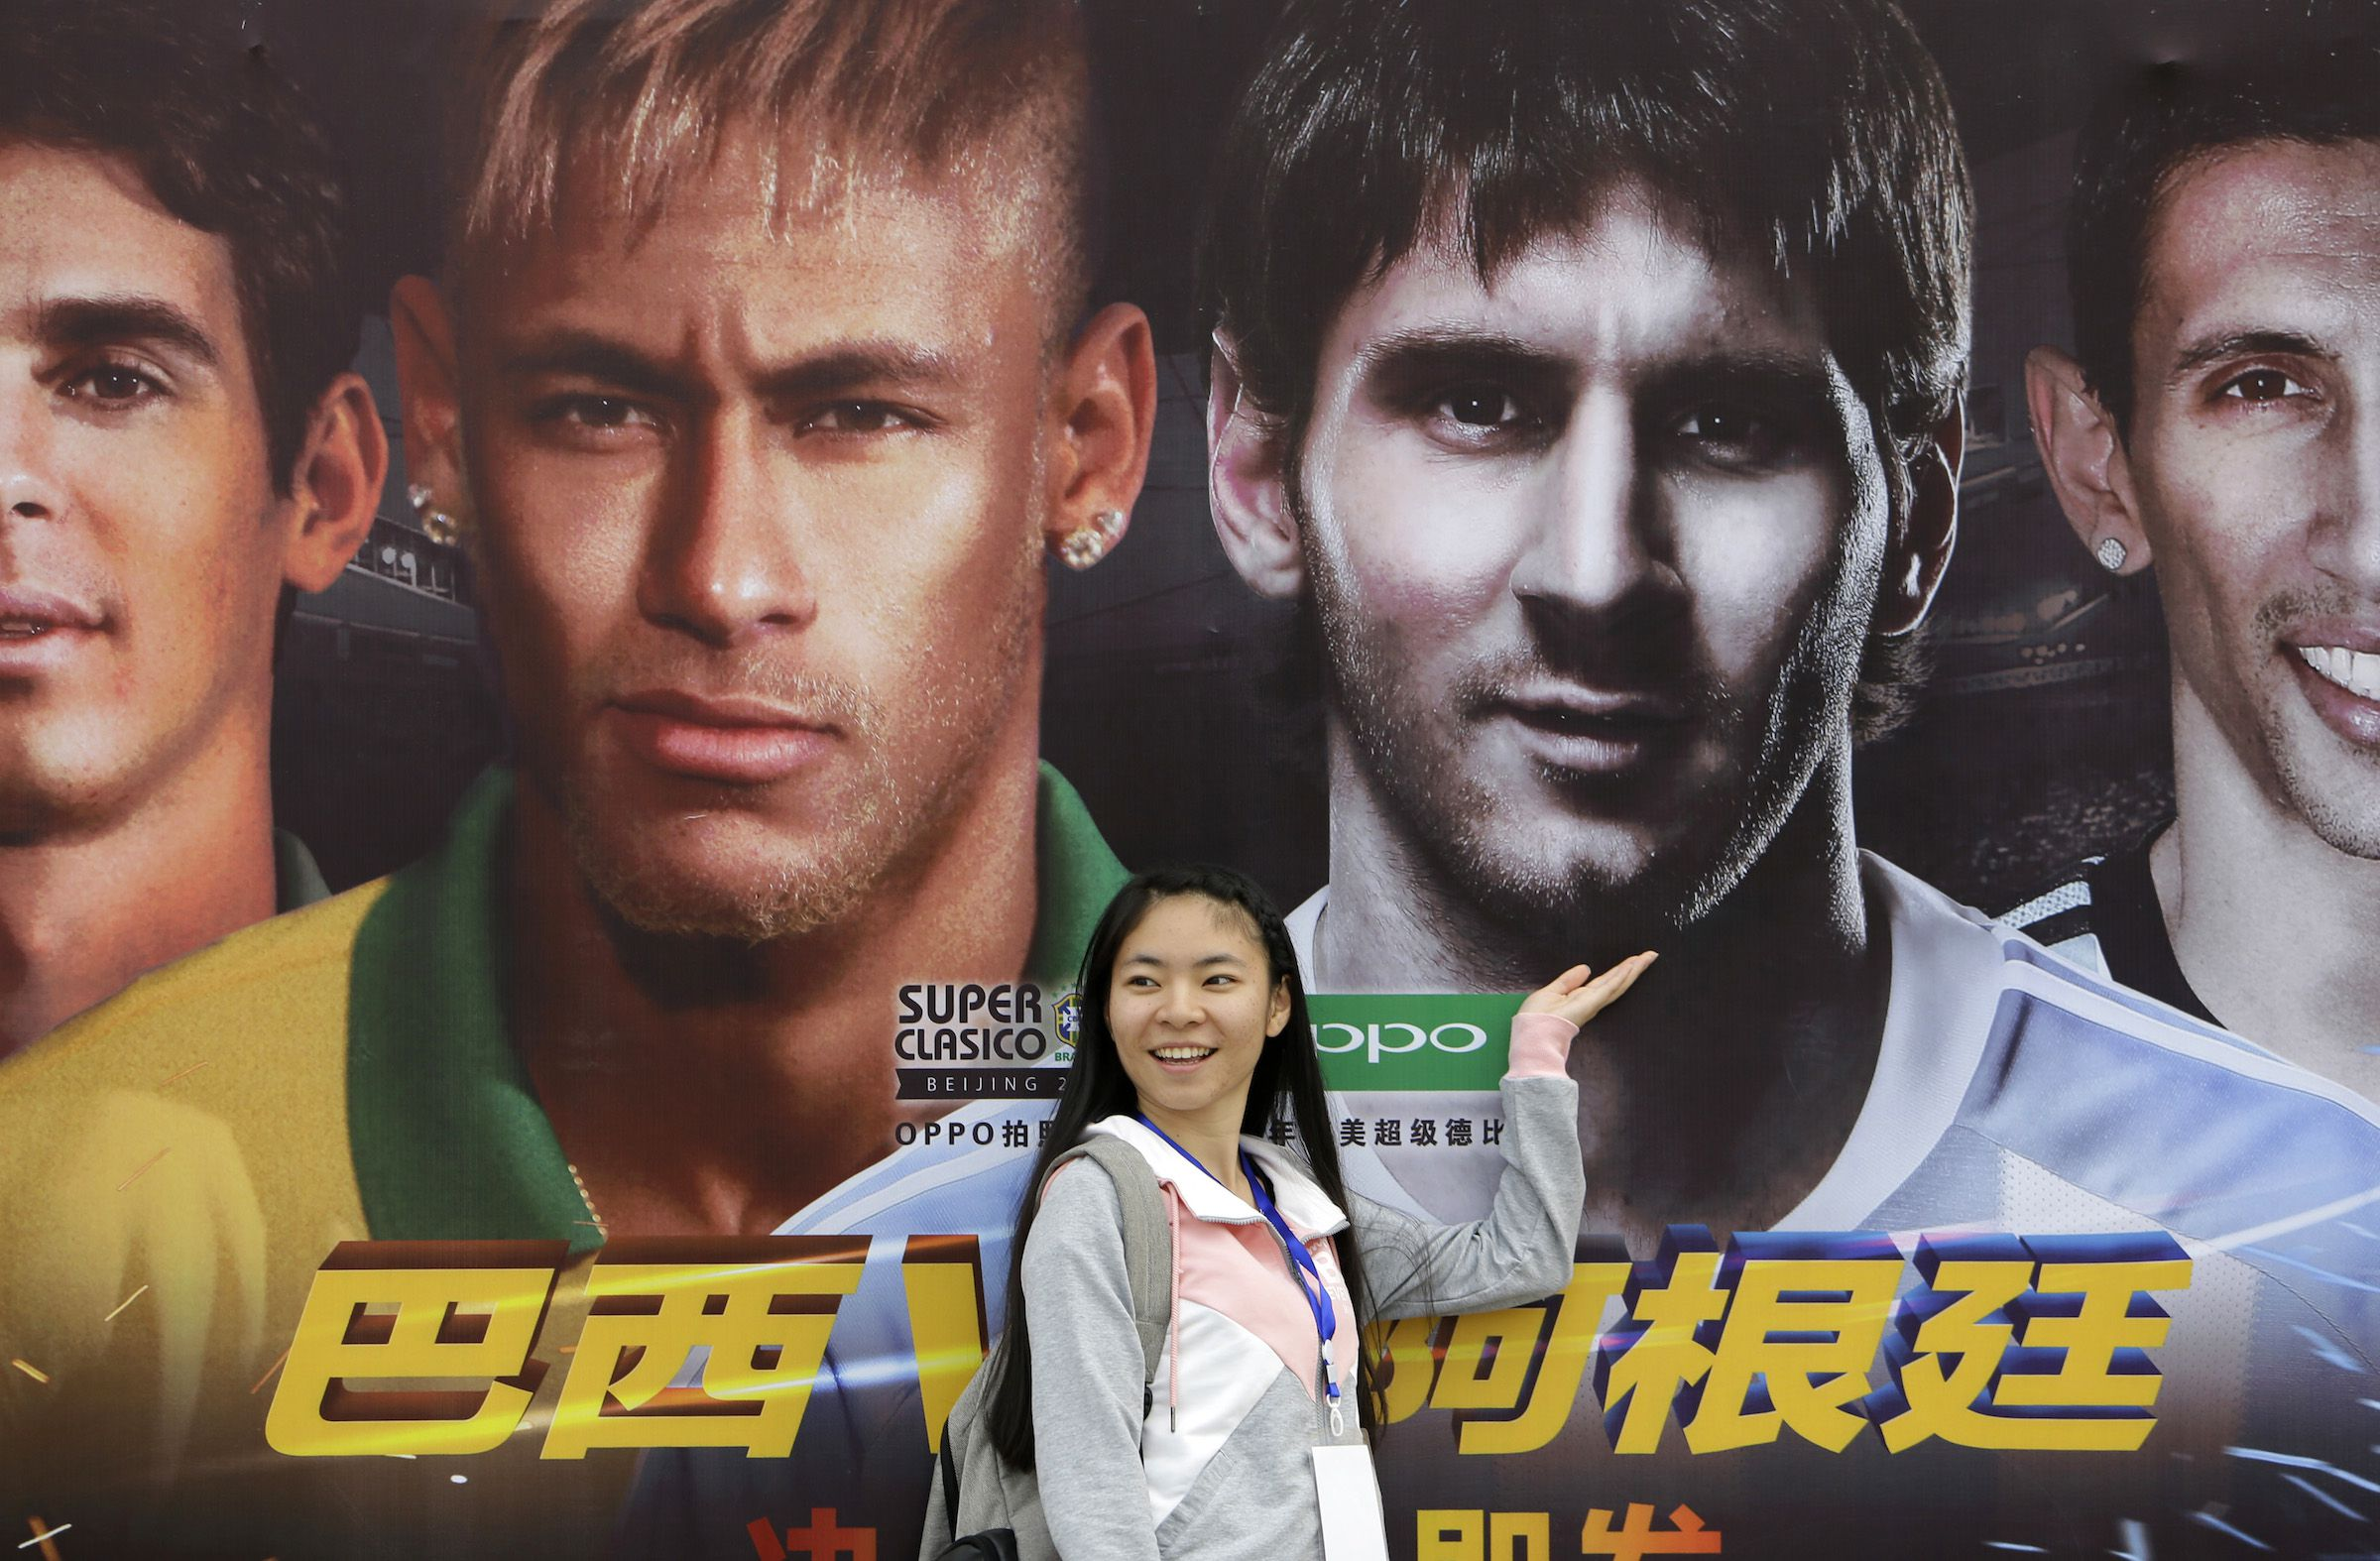 "A woman poses for photographs in front of a poster featuring Brazilian and Argentine soccer players (from L to R) Oscar, Neymar, Lionel Messi and Angel Di Maria, ahead of their international friendly soccer match titled ""the Super Classic of the Americas"", outside the National Stadium, or the Bird's Nest, in Beijing October 10, 2014. Brazil and Argentina will play their international friendly match in Beijing on Saturday. REUTERS/Jason Lee (CHINA - Tags: SPORT SOCCER) - RTR49N66"